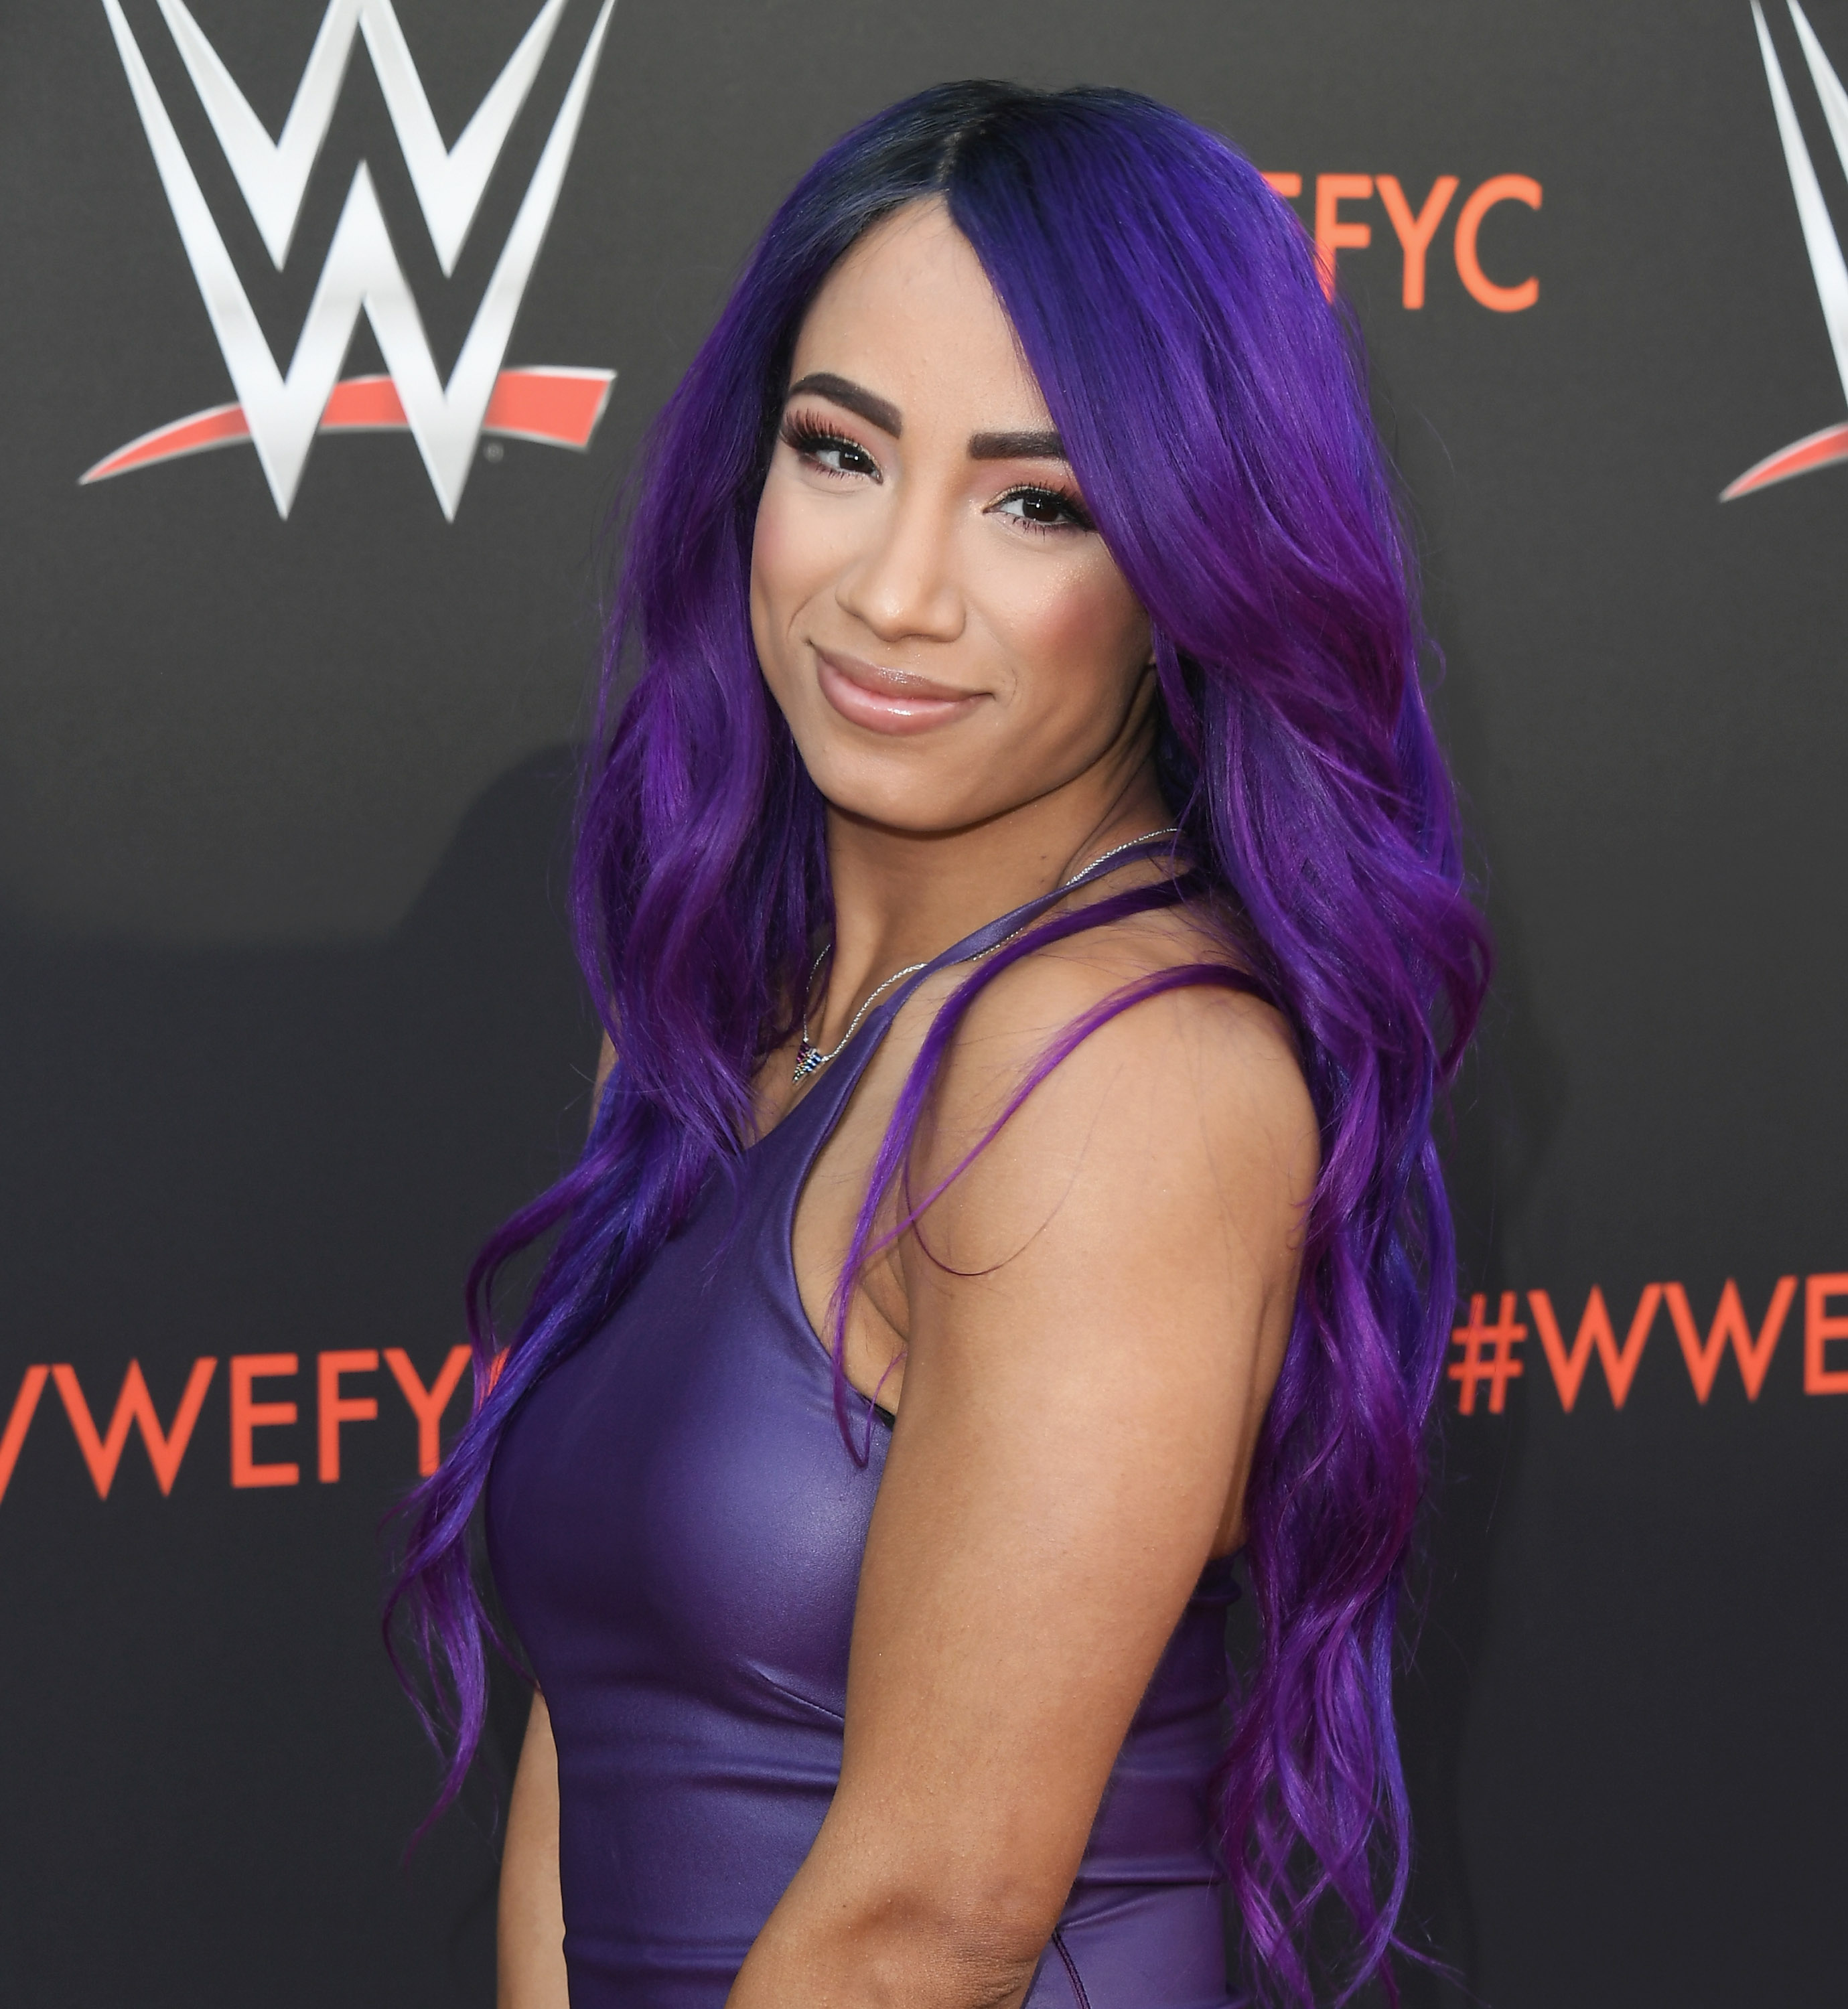 WWE News: Sasha Banks to be replaced by Charlotte Flair in a match against Becky Lynch due to back injury?